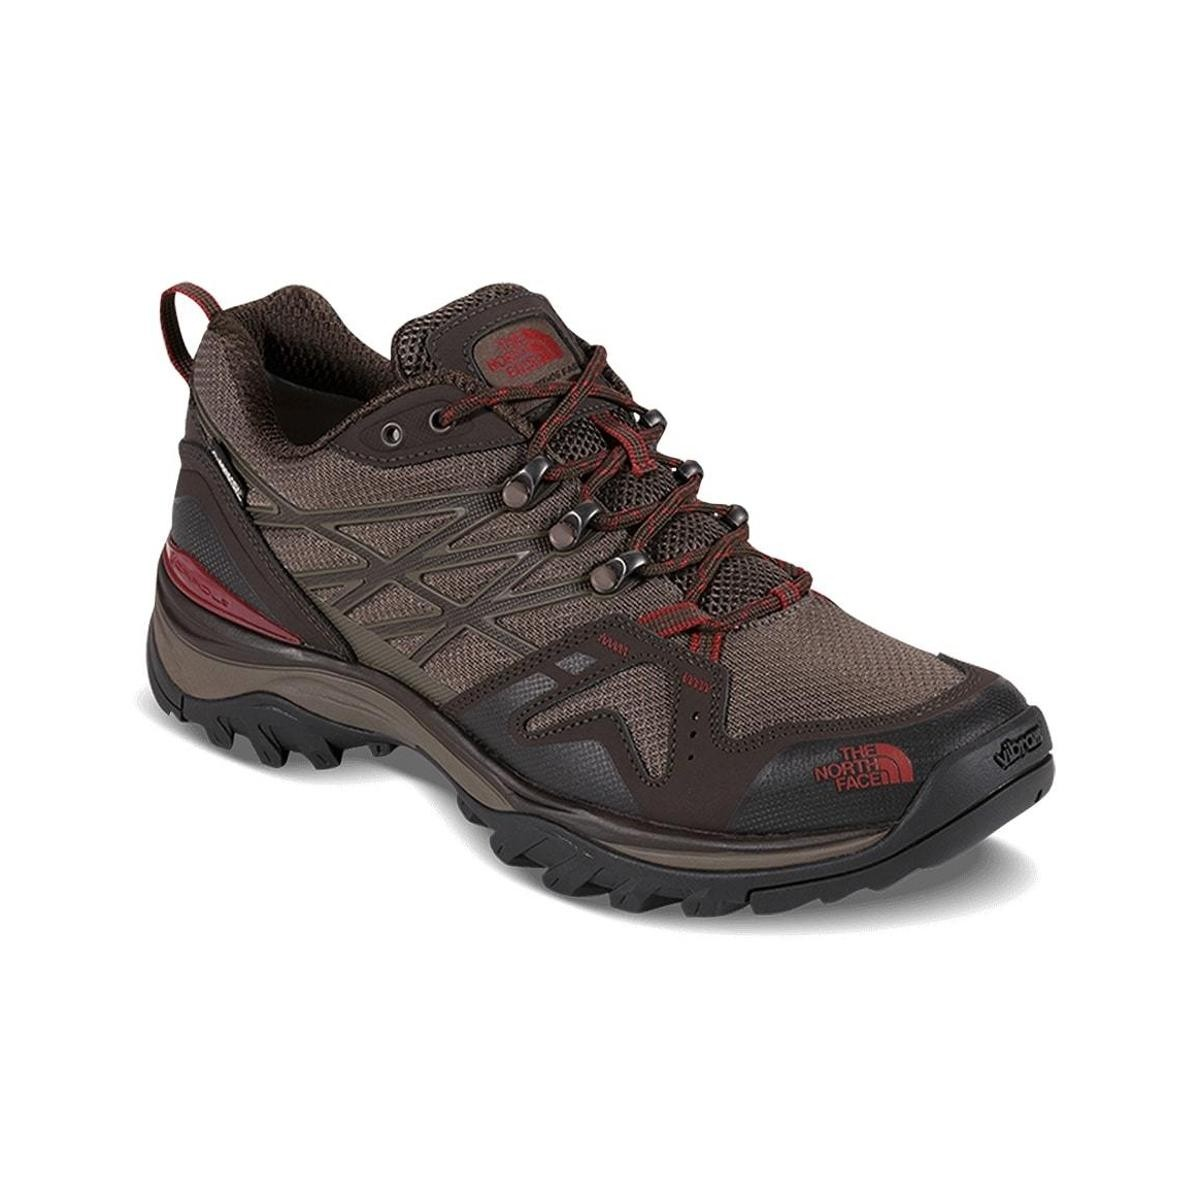 Tênis The North Face Hedgehog Fastpack Gtx Masculino -